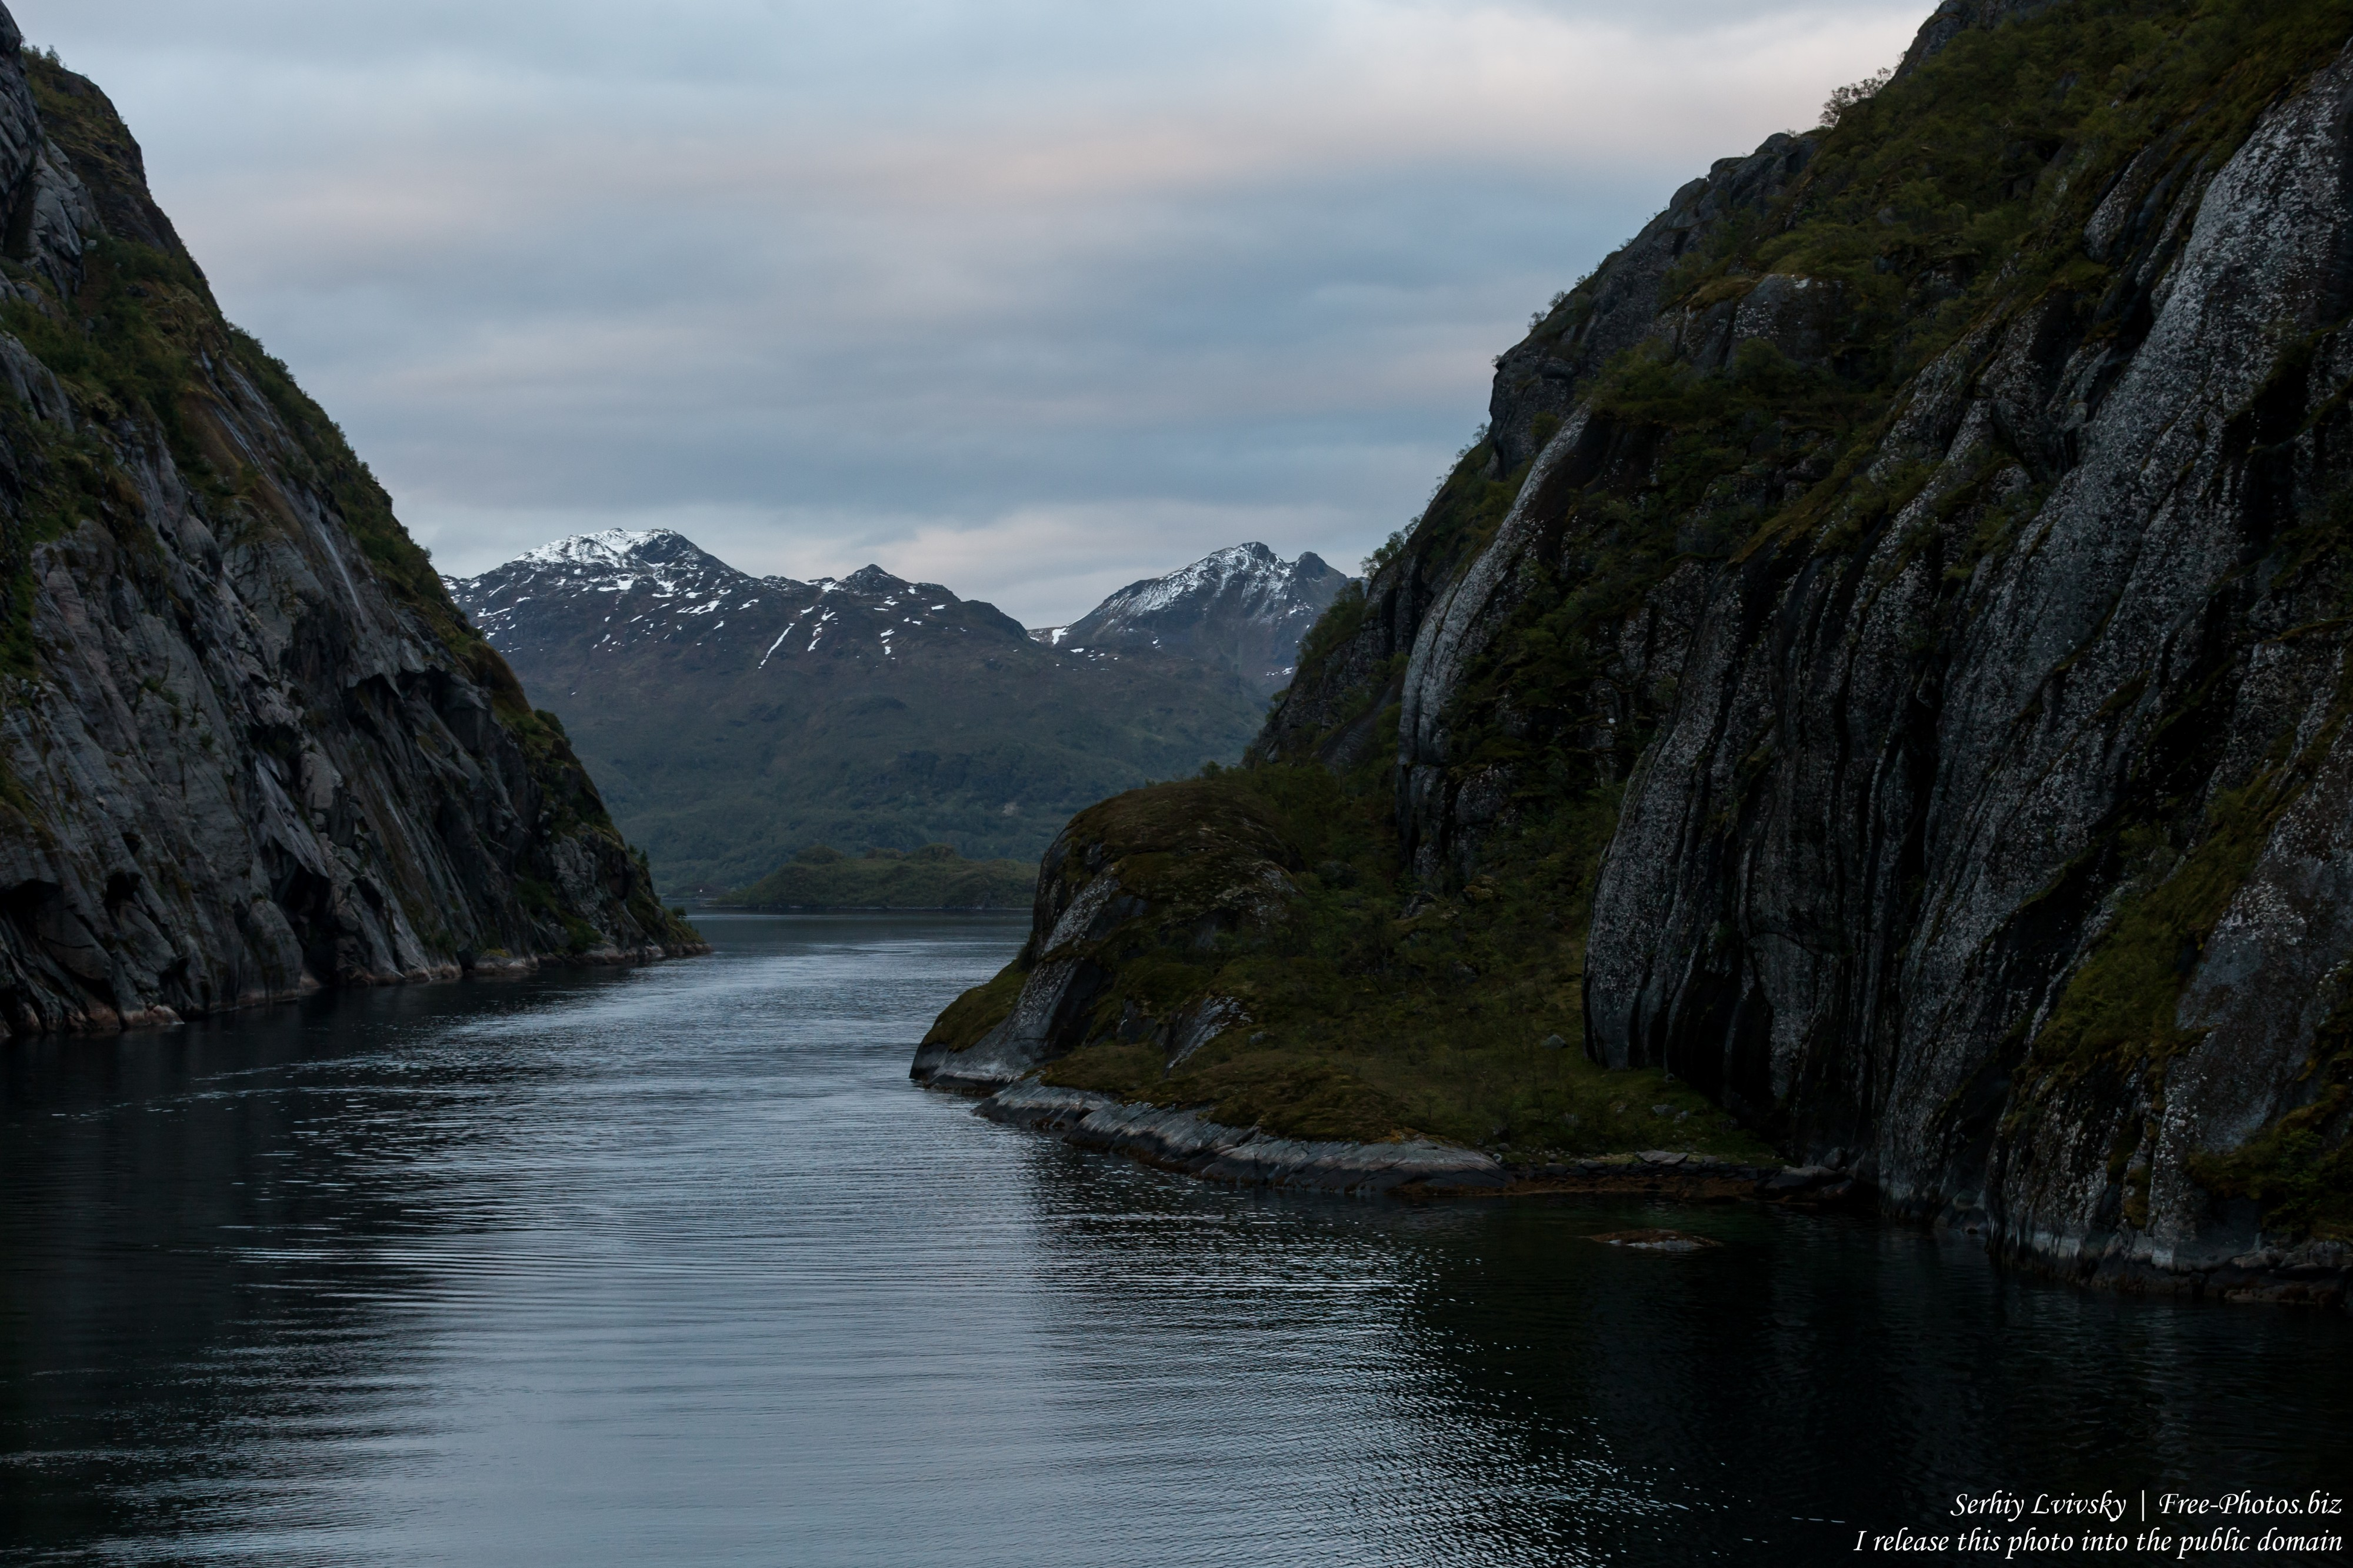 Trollfjord, Norway, photographed in June 2018 by Serhiy Lvivsky, picture 7